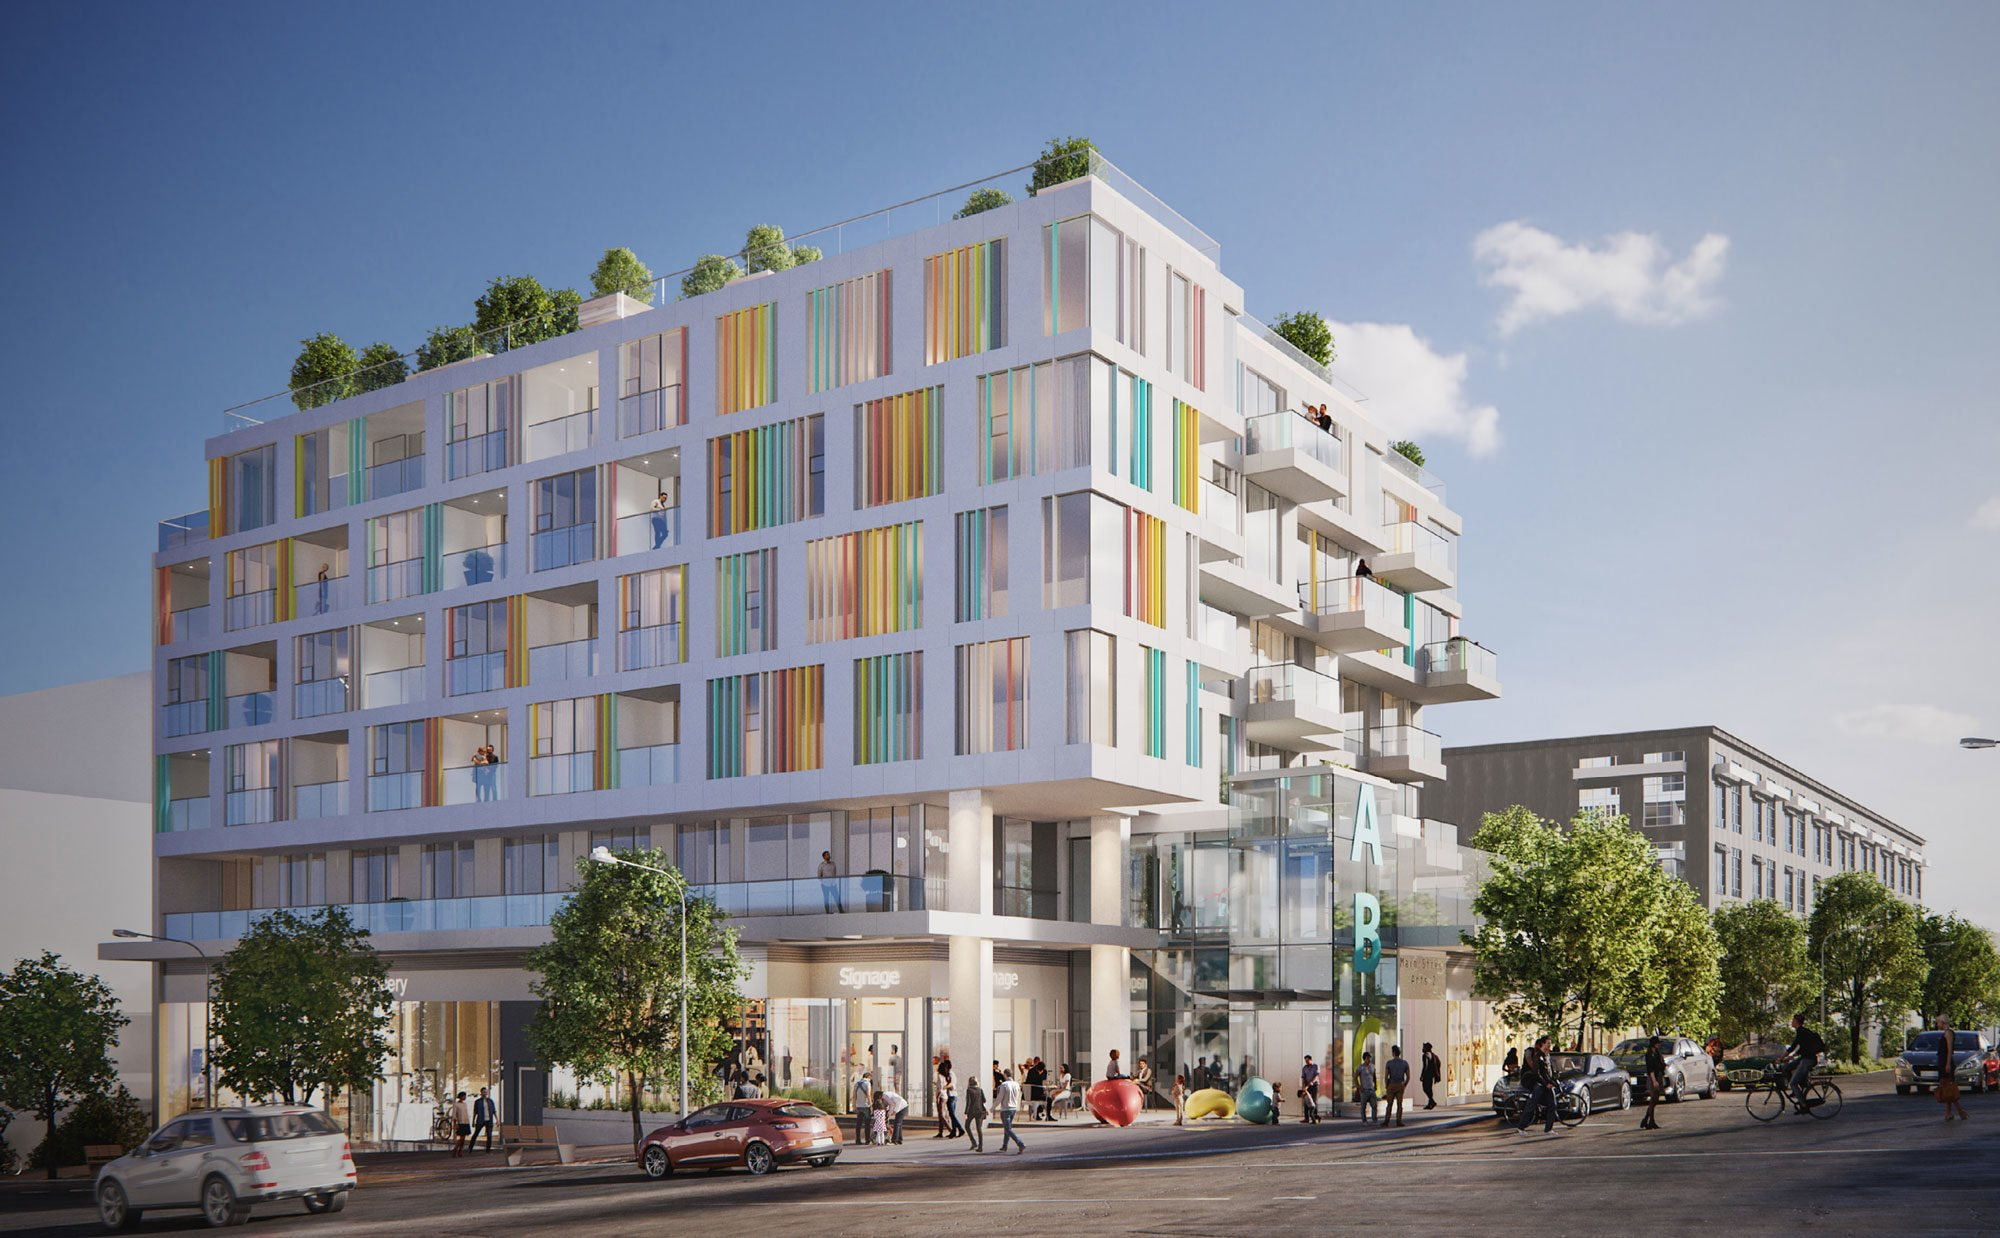 PortLiving plans 49-unit condo building and childcare facility in Mount Pleasant